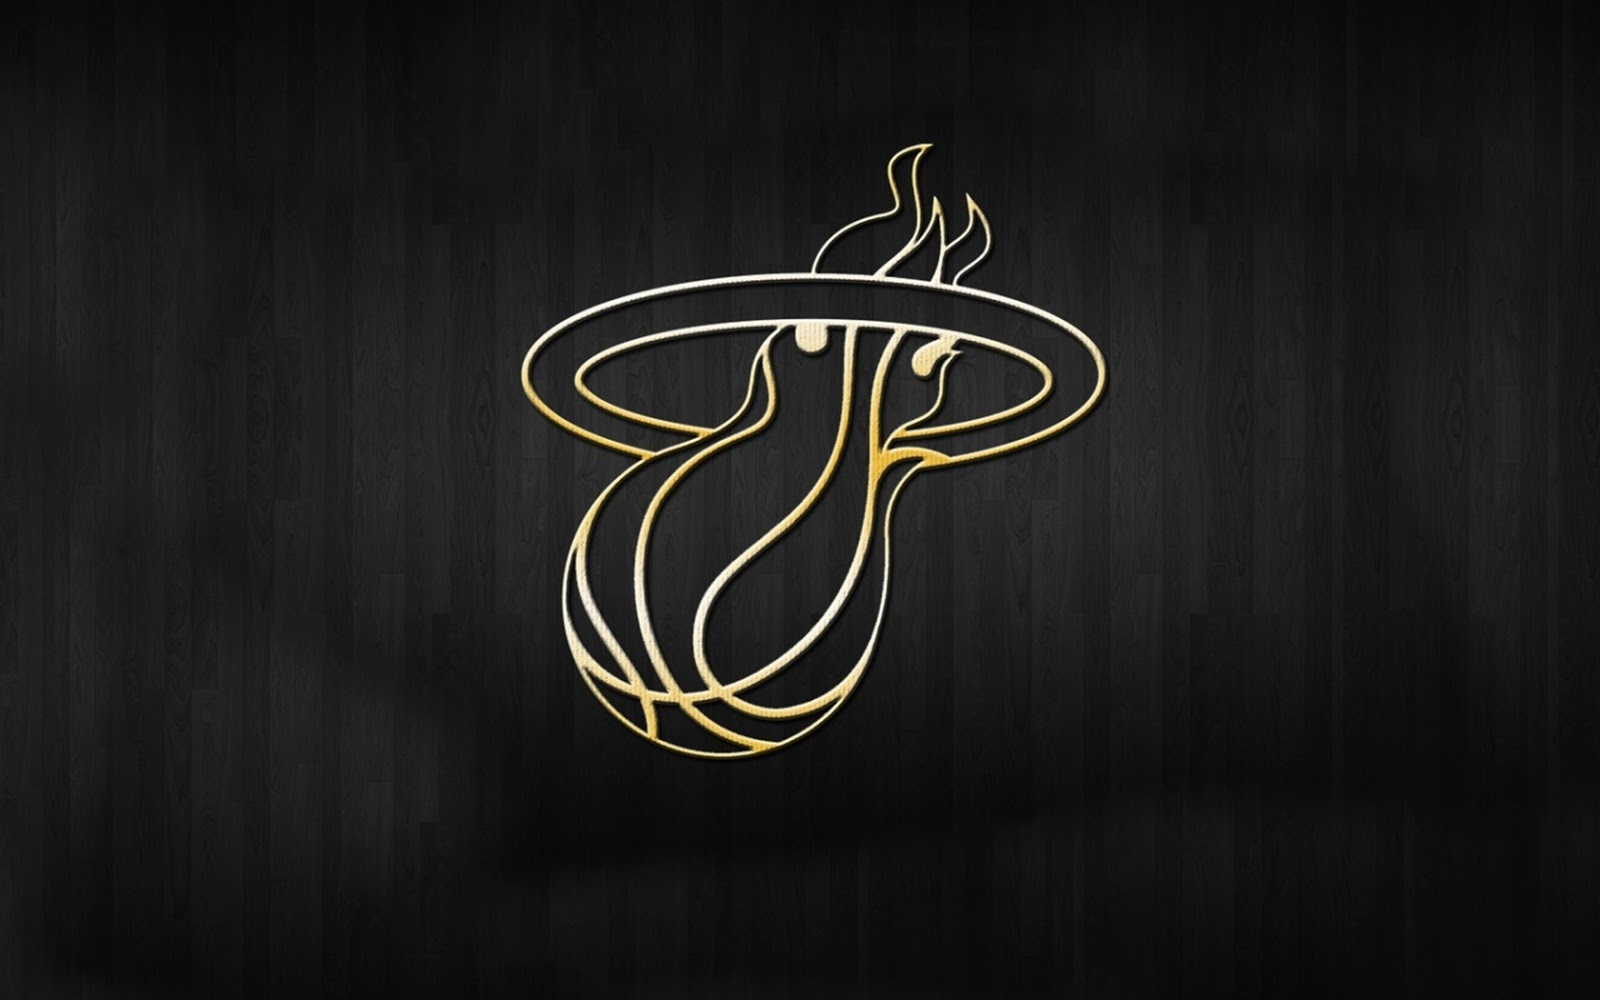 42] Miami Heat Logo Wallpaper HD on WallpaperSafari 1600x1000